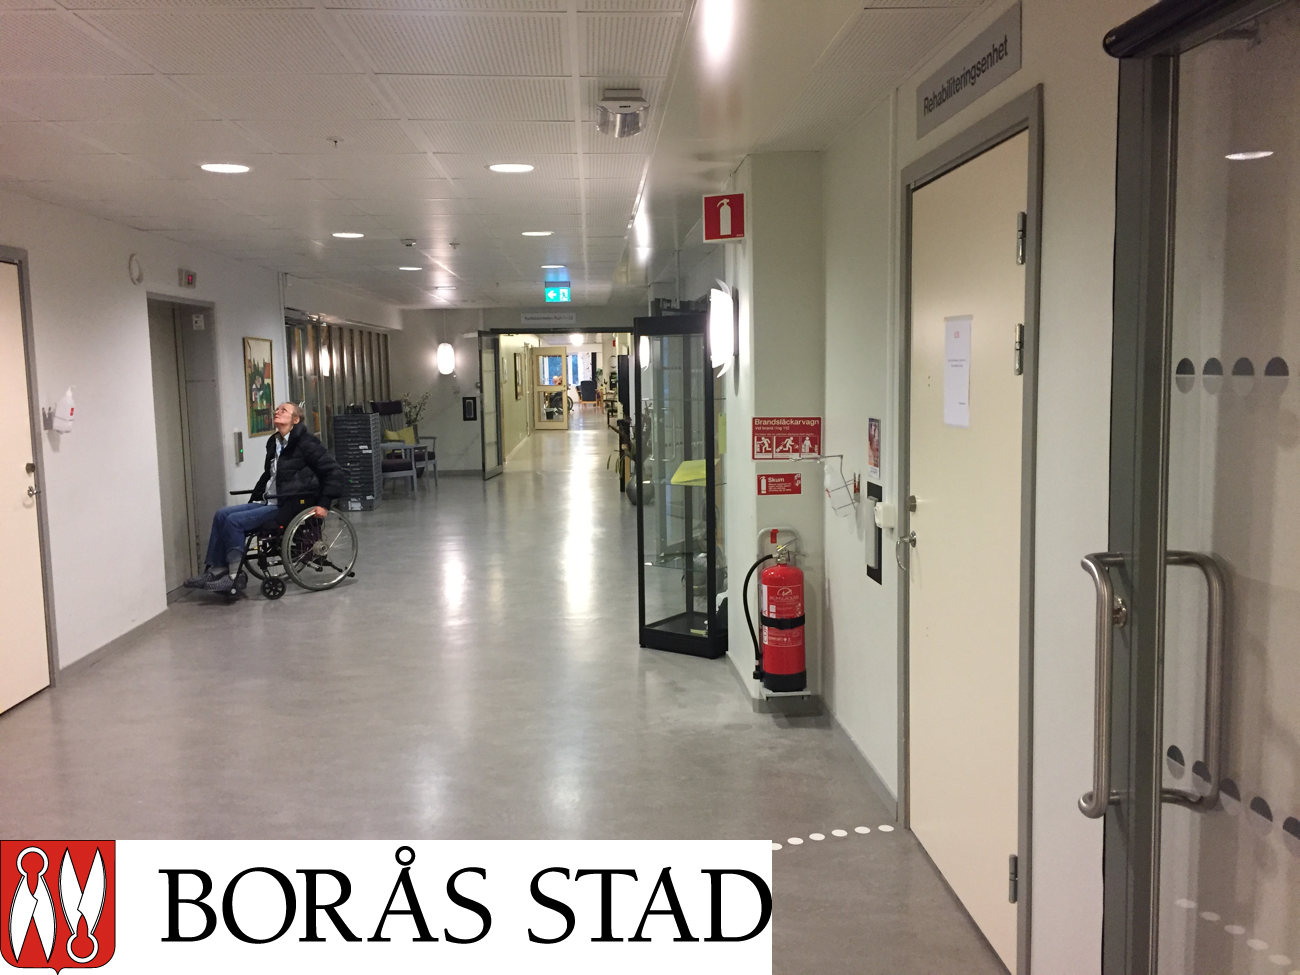 boras - Borås city increases the accessibility of their fire protection with the E-Z Extinguish mobile suspension device.